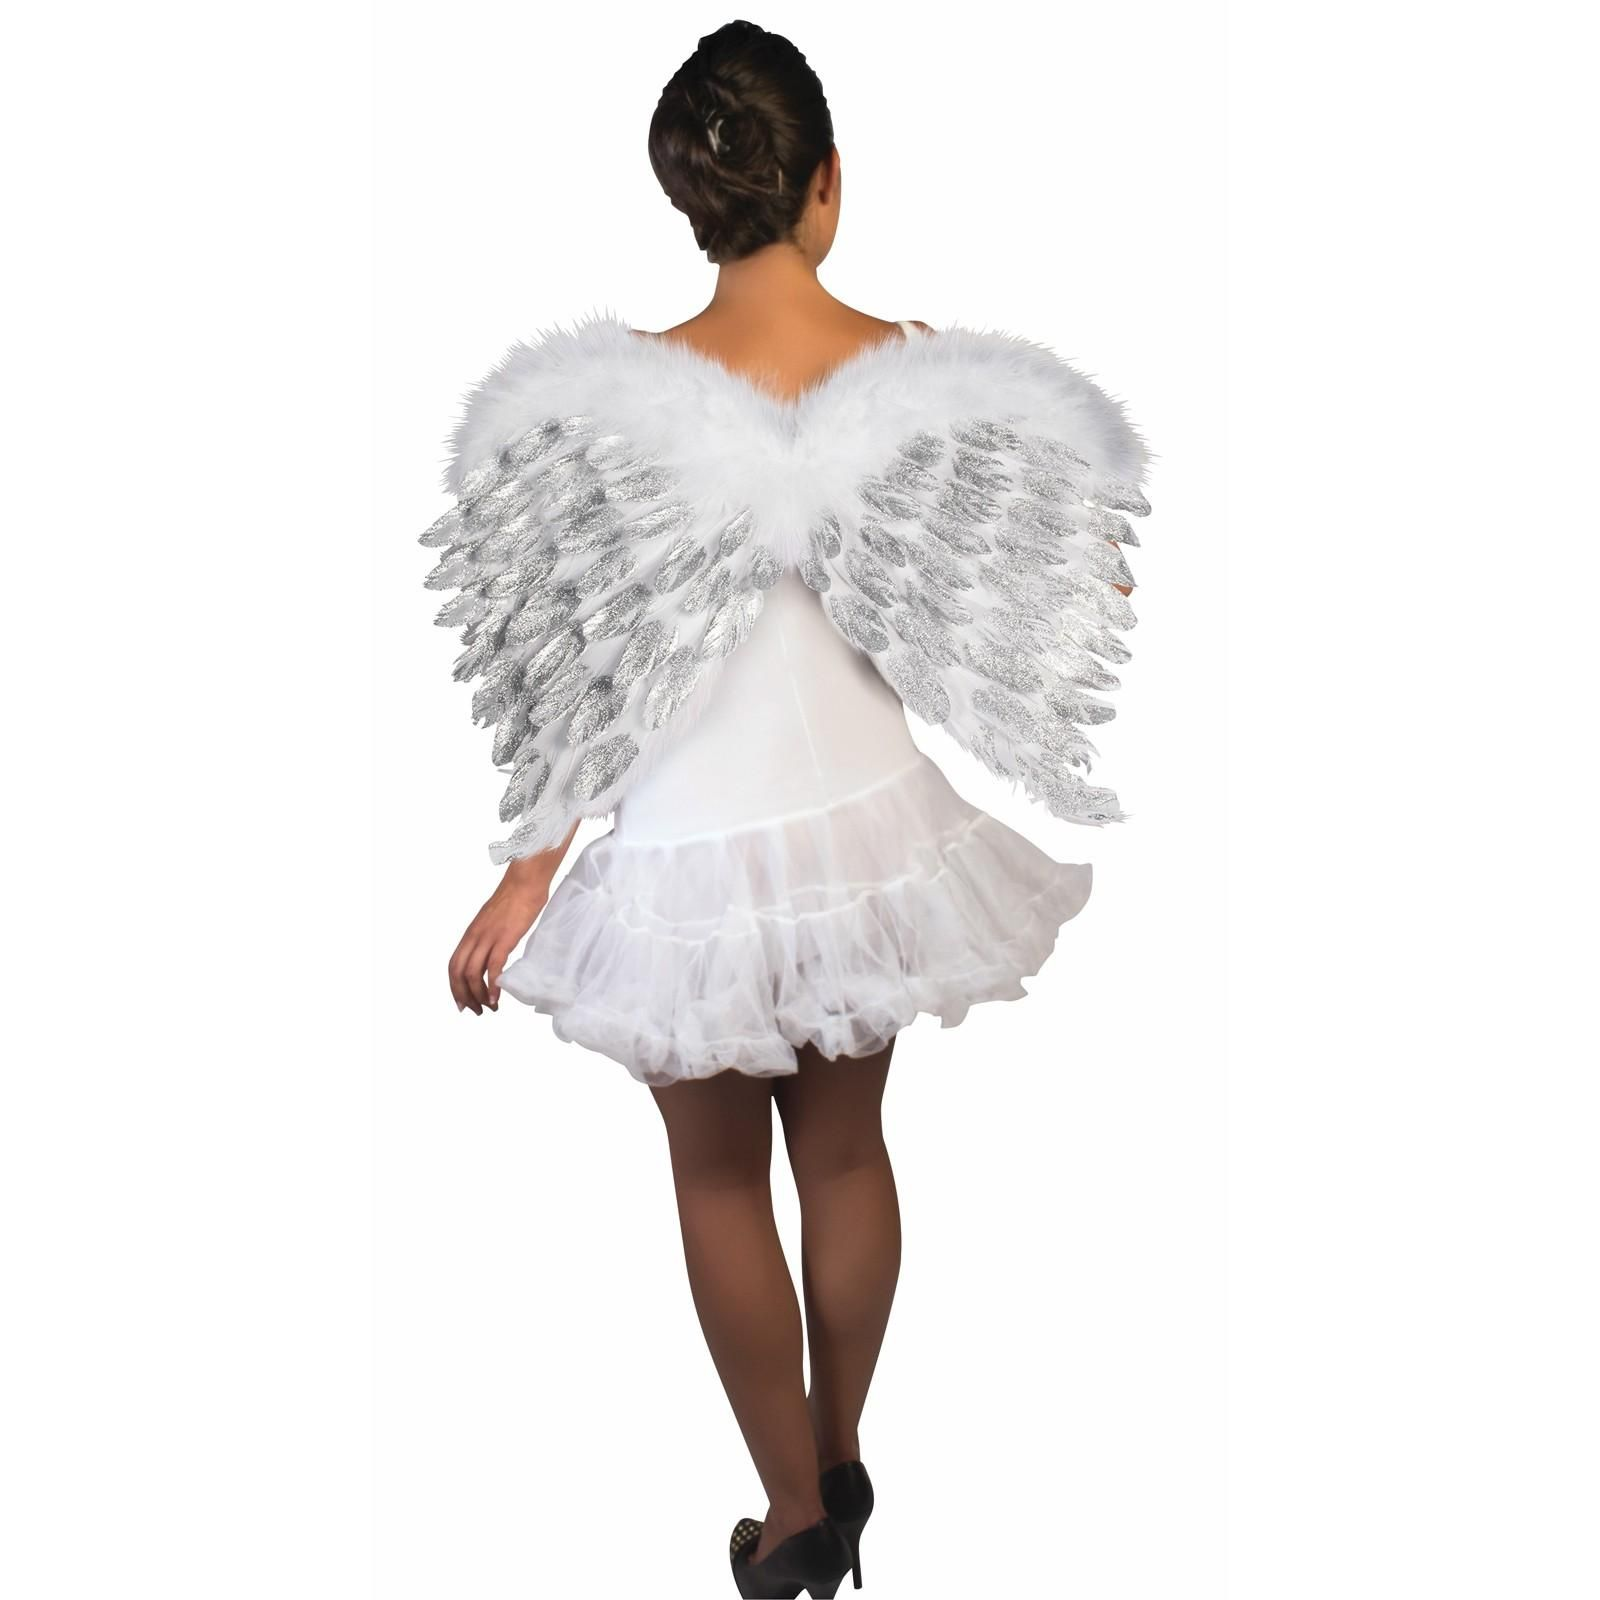 Glitter White Feather Angel Wings | BuyCostumes.com ...